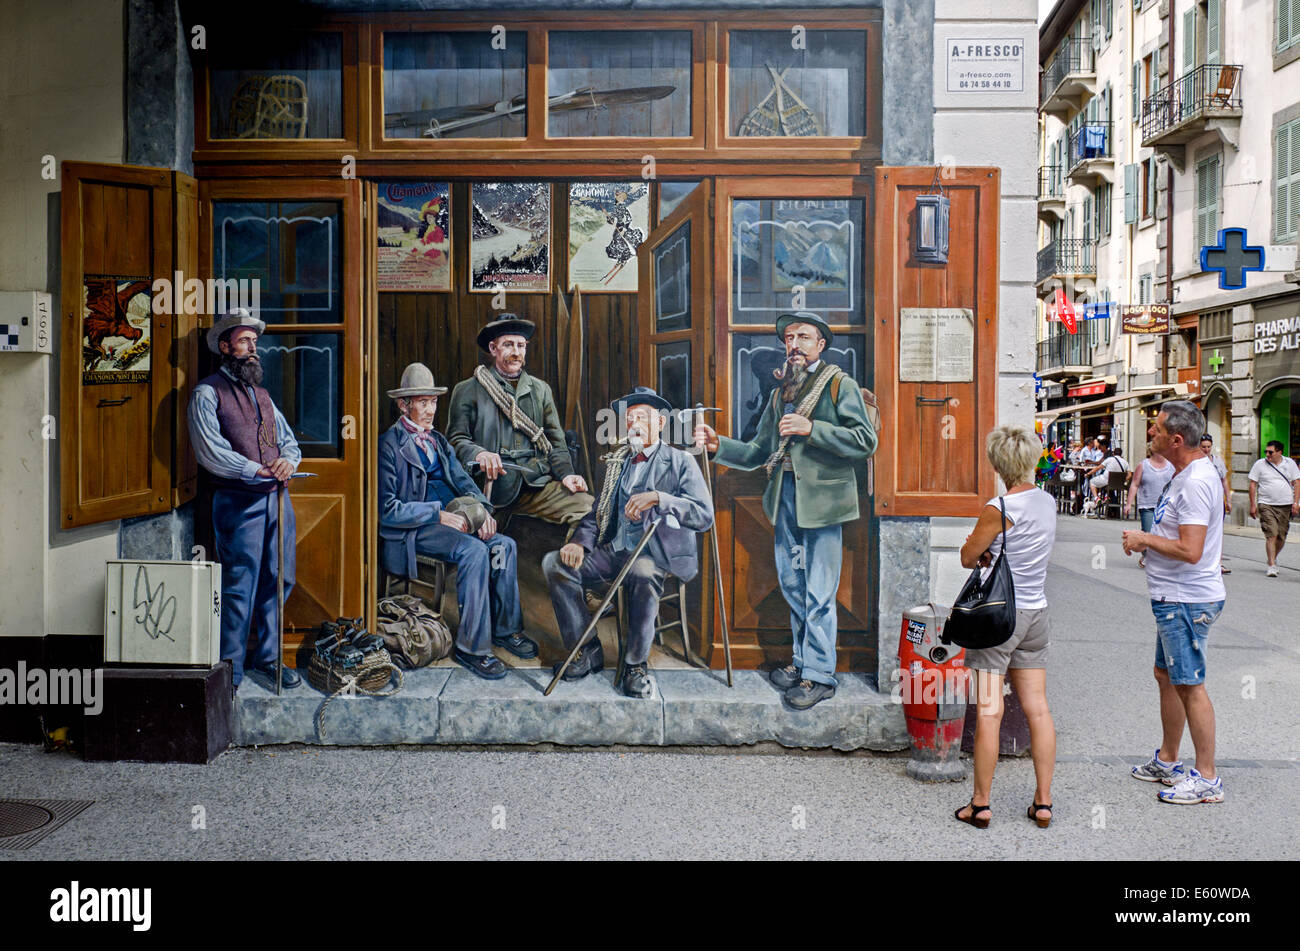 Tourists study the Compagnie des Guides mural in the French town of Chamonix. - Stock Image